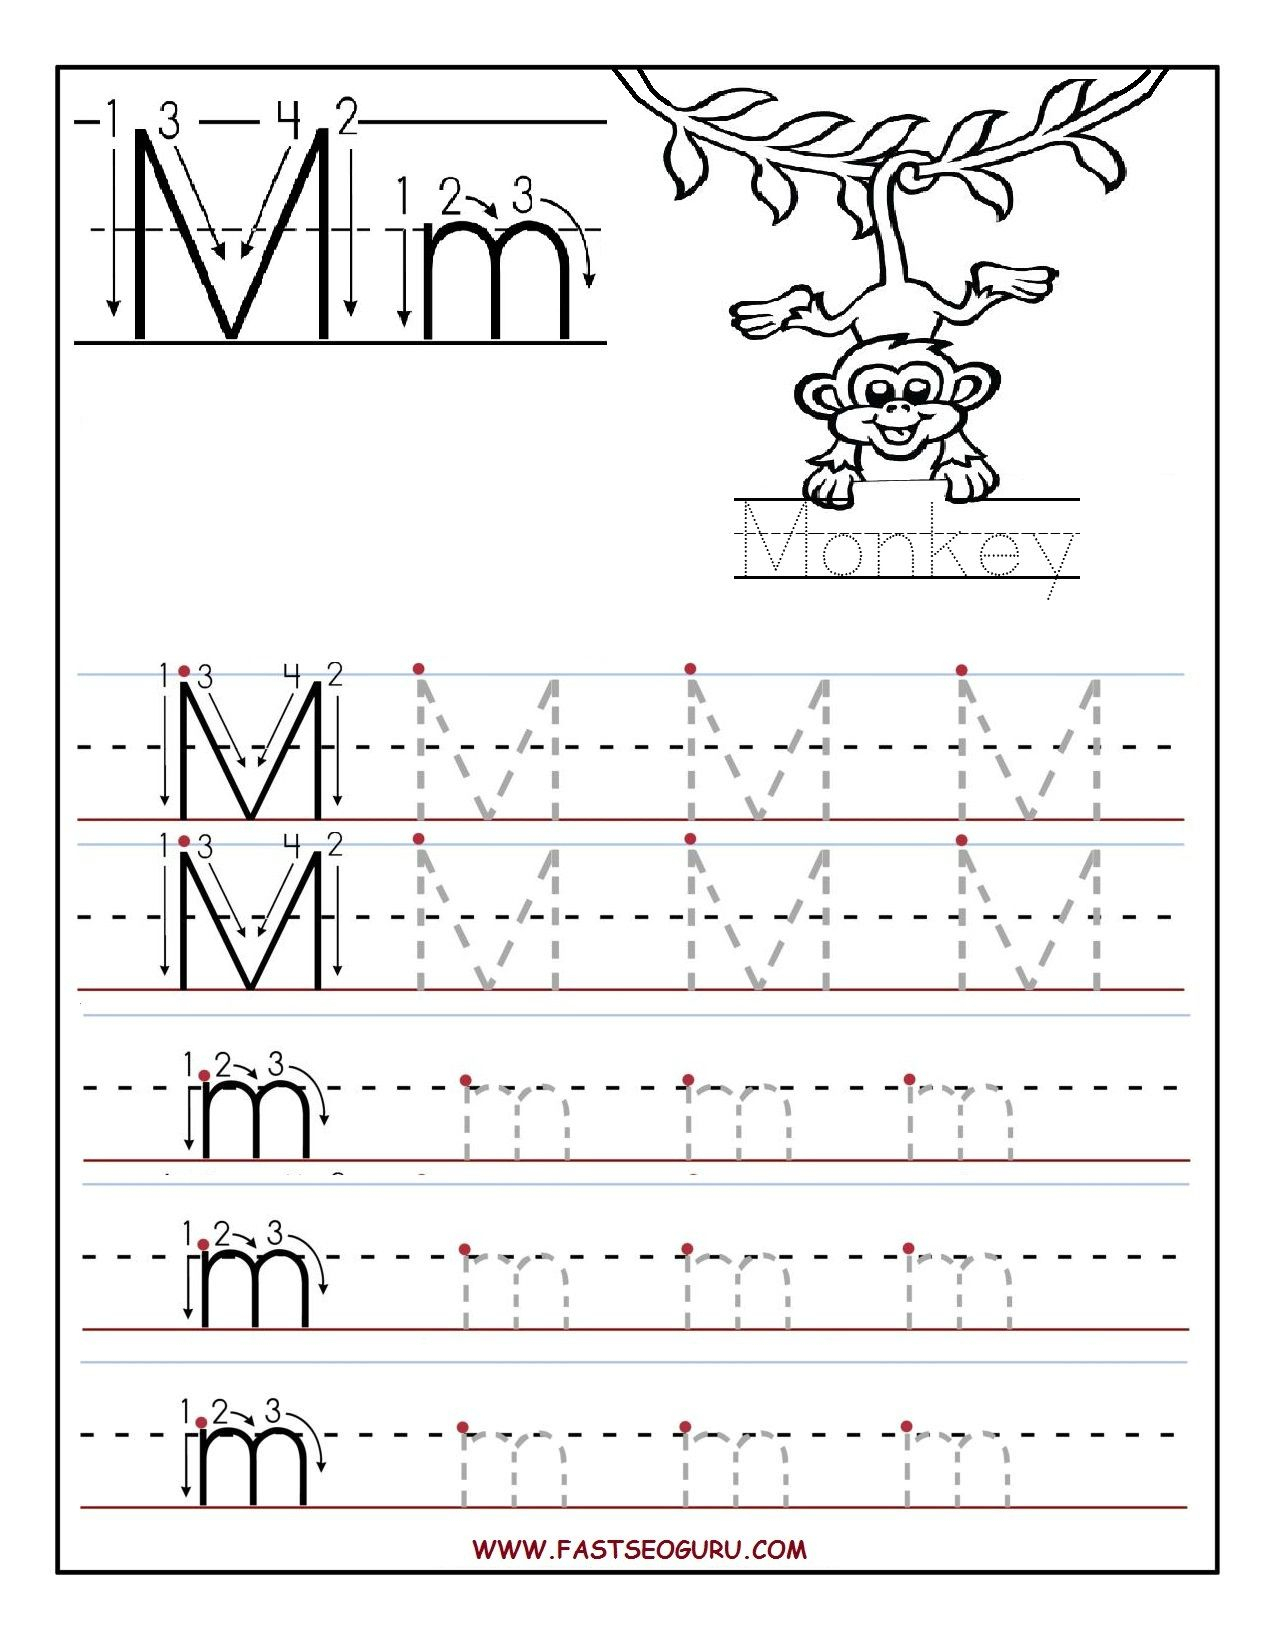 Printable Letter M Tracing Worksheets For Preschool | Letter with regard to Letter M Worksheets Printable